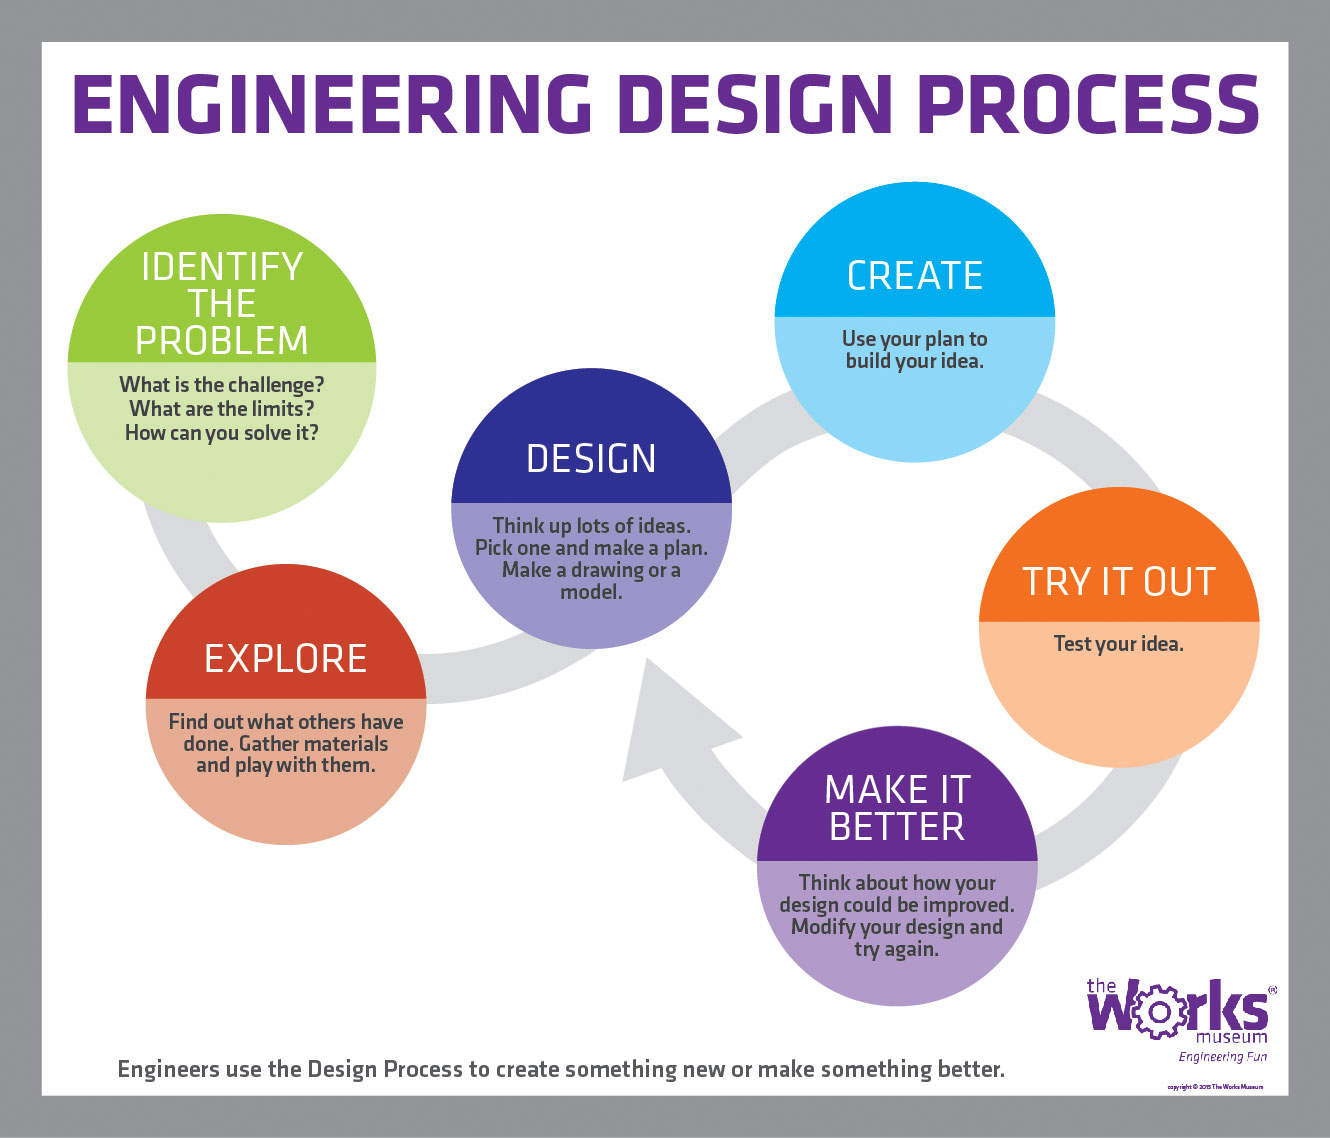 Engineering Design Process |